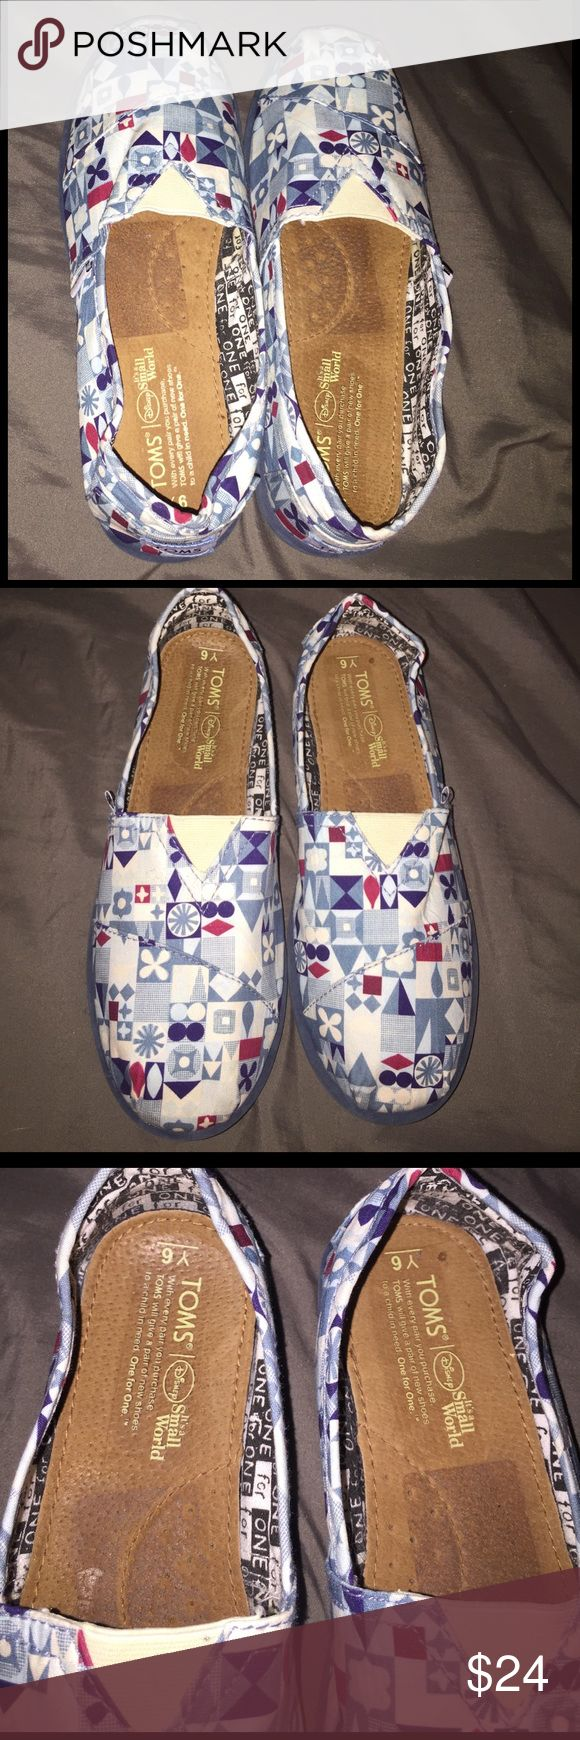 "TOMS Disney ""Its a Small World"" 🌎 Reposh! These are so cute! They say Y6 for the size, and I wear a 7.5 and they fit me perfect EXCEPT they are wide on my skinny feet! So I am reposhing them 🌎 I bought them saying they were New but I think they are very lightly used. Super cute and a must have for any Disney Lover! ❤️❤️❤️ TOMS Shoes Flats & Loafers"